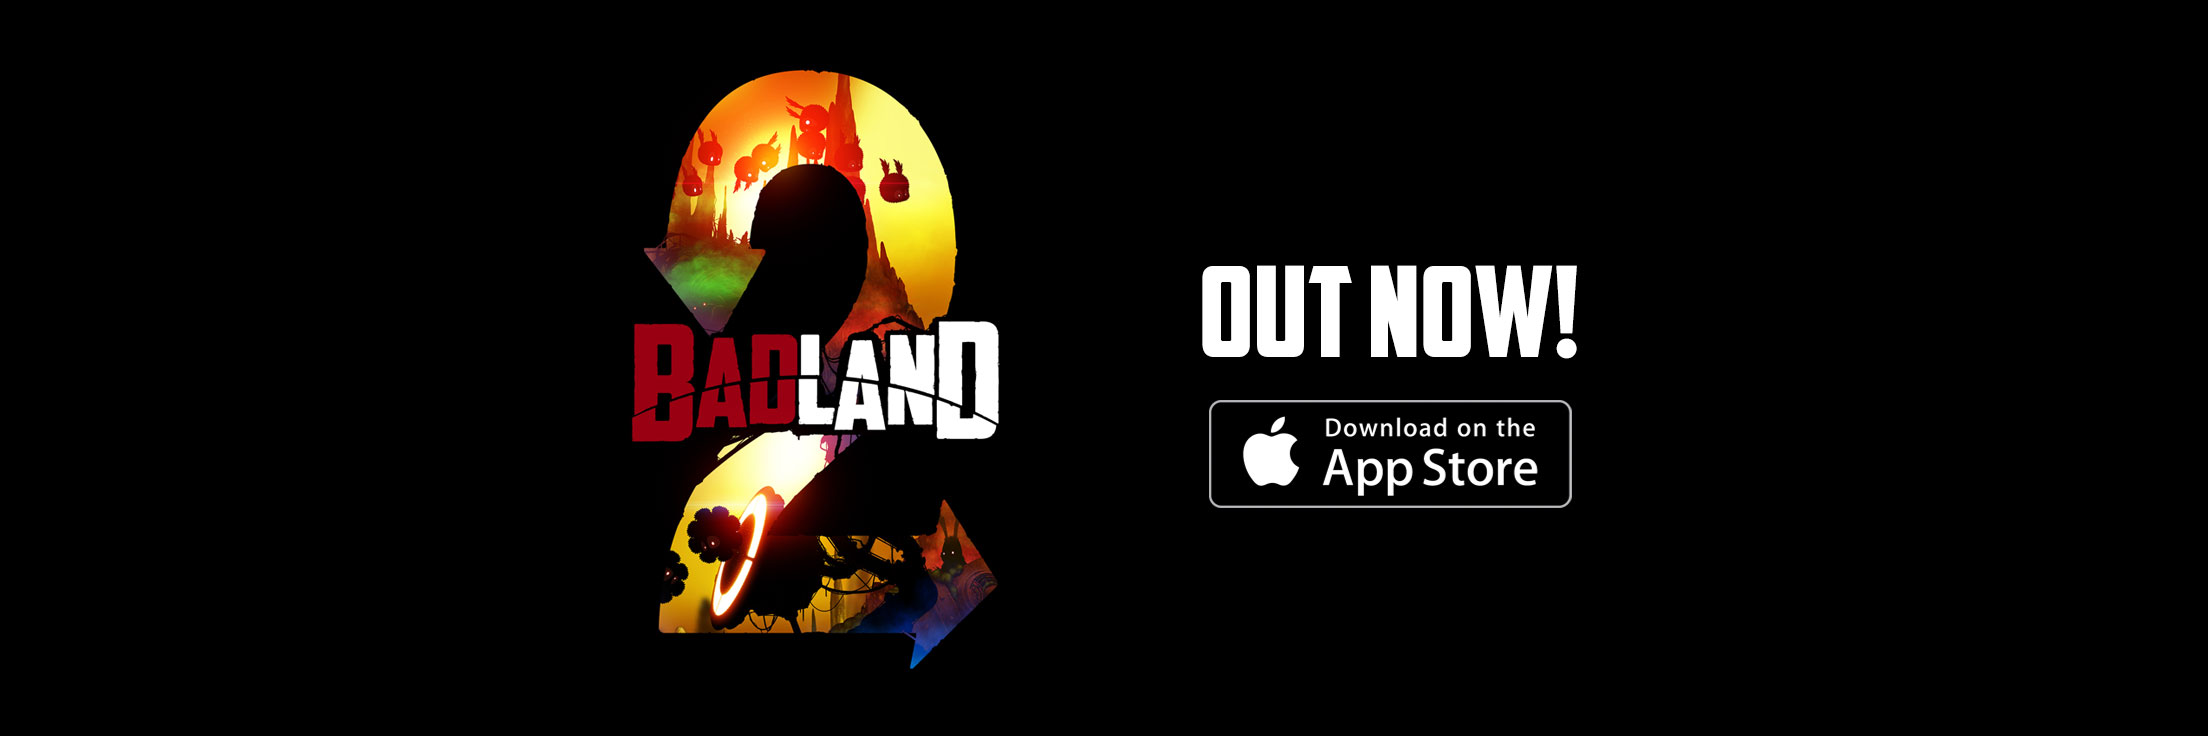 BADLAND-2 - Available on The App Store